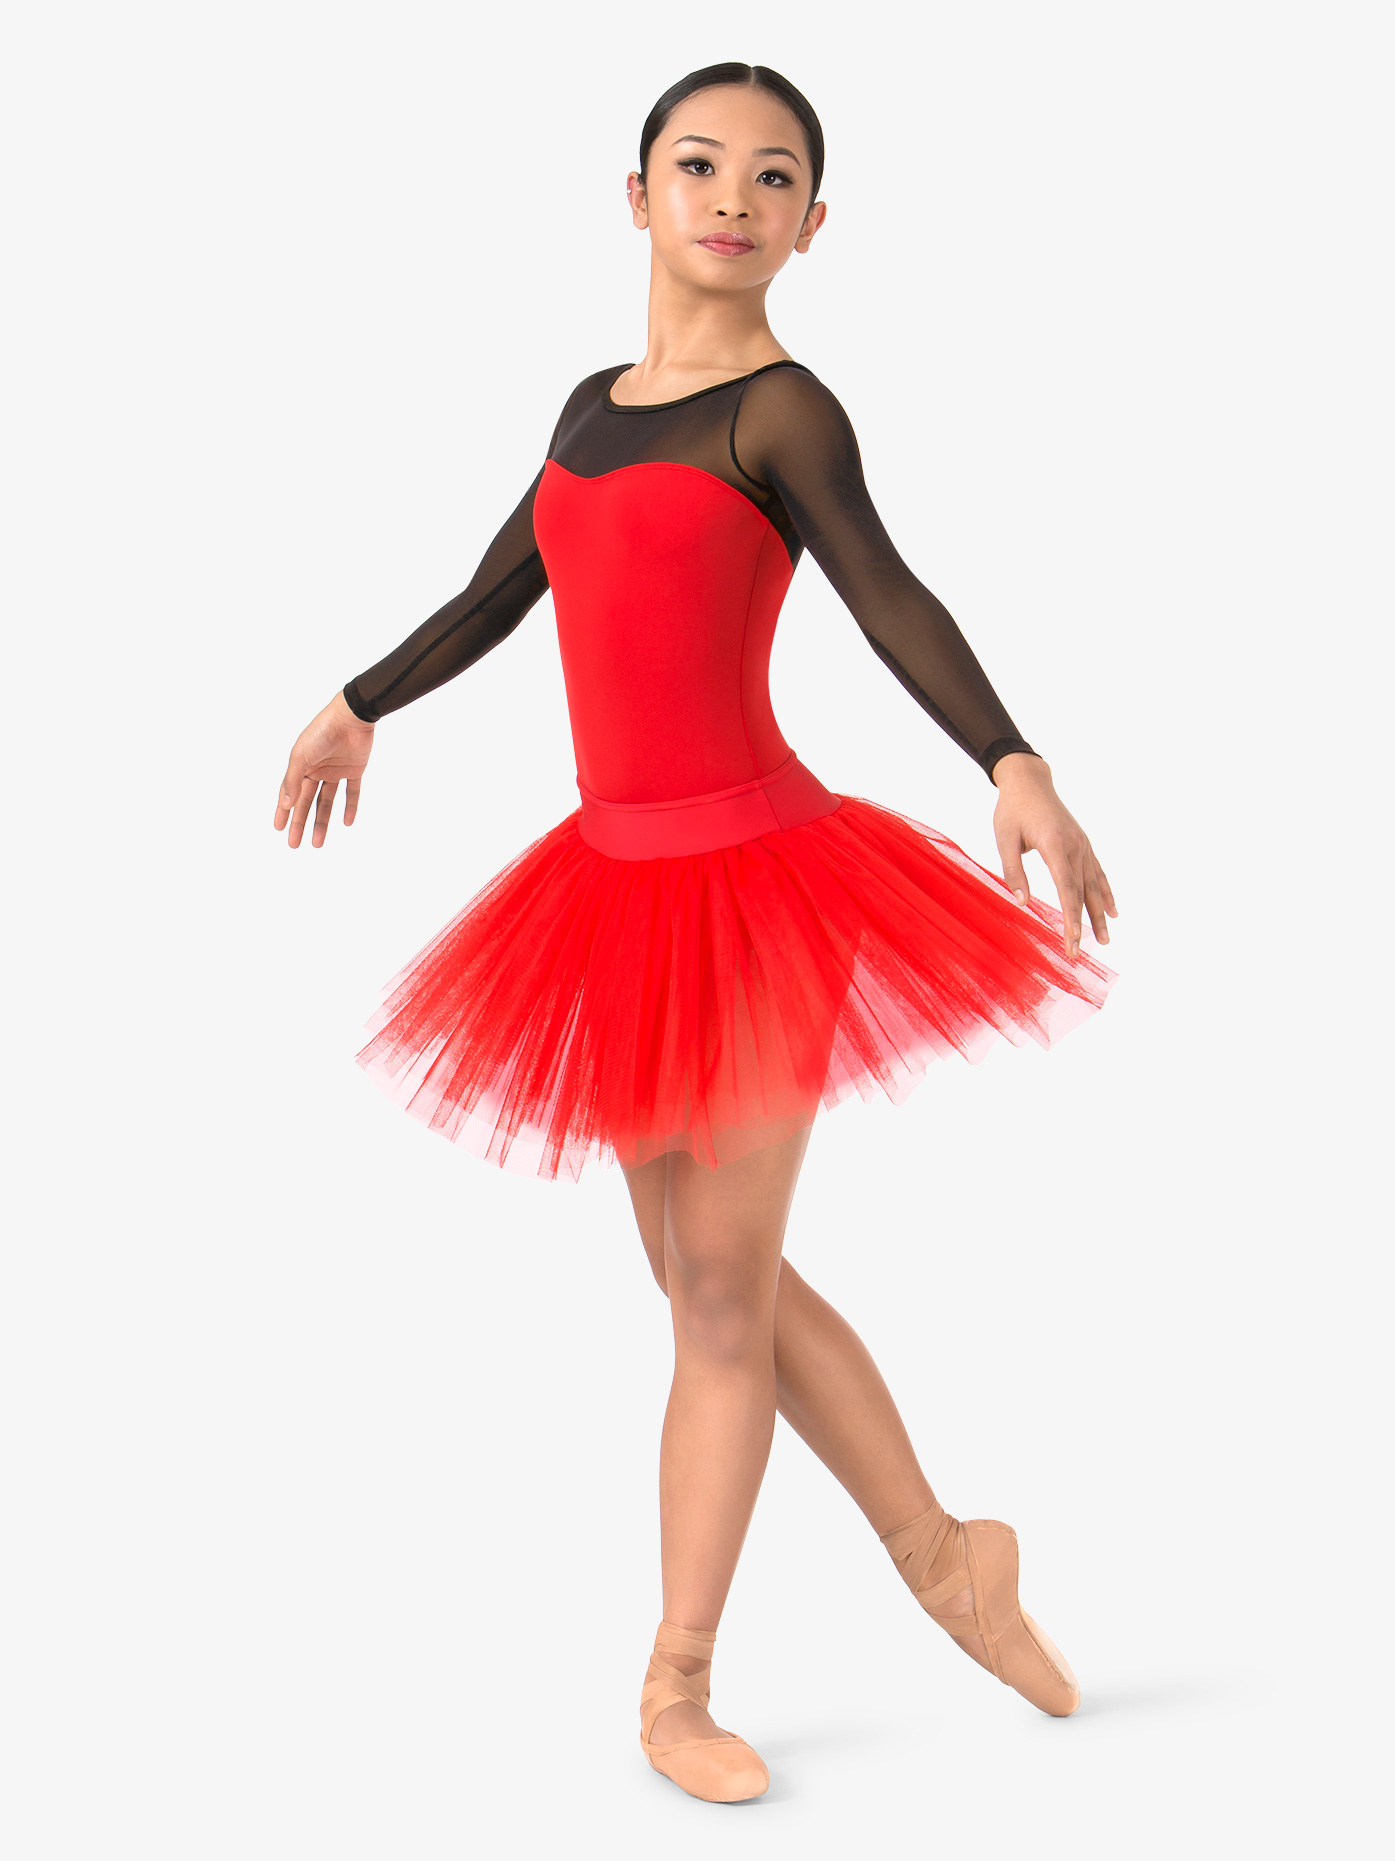 Natalie Womens 4-Layer Ballet Tutu Skirt N9010